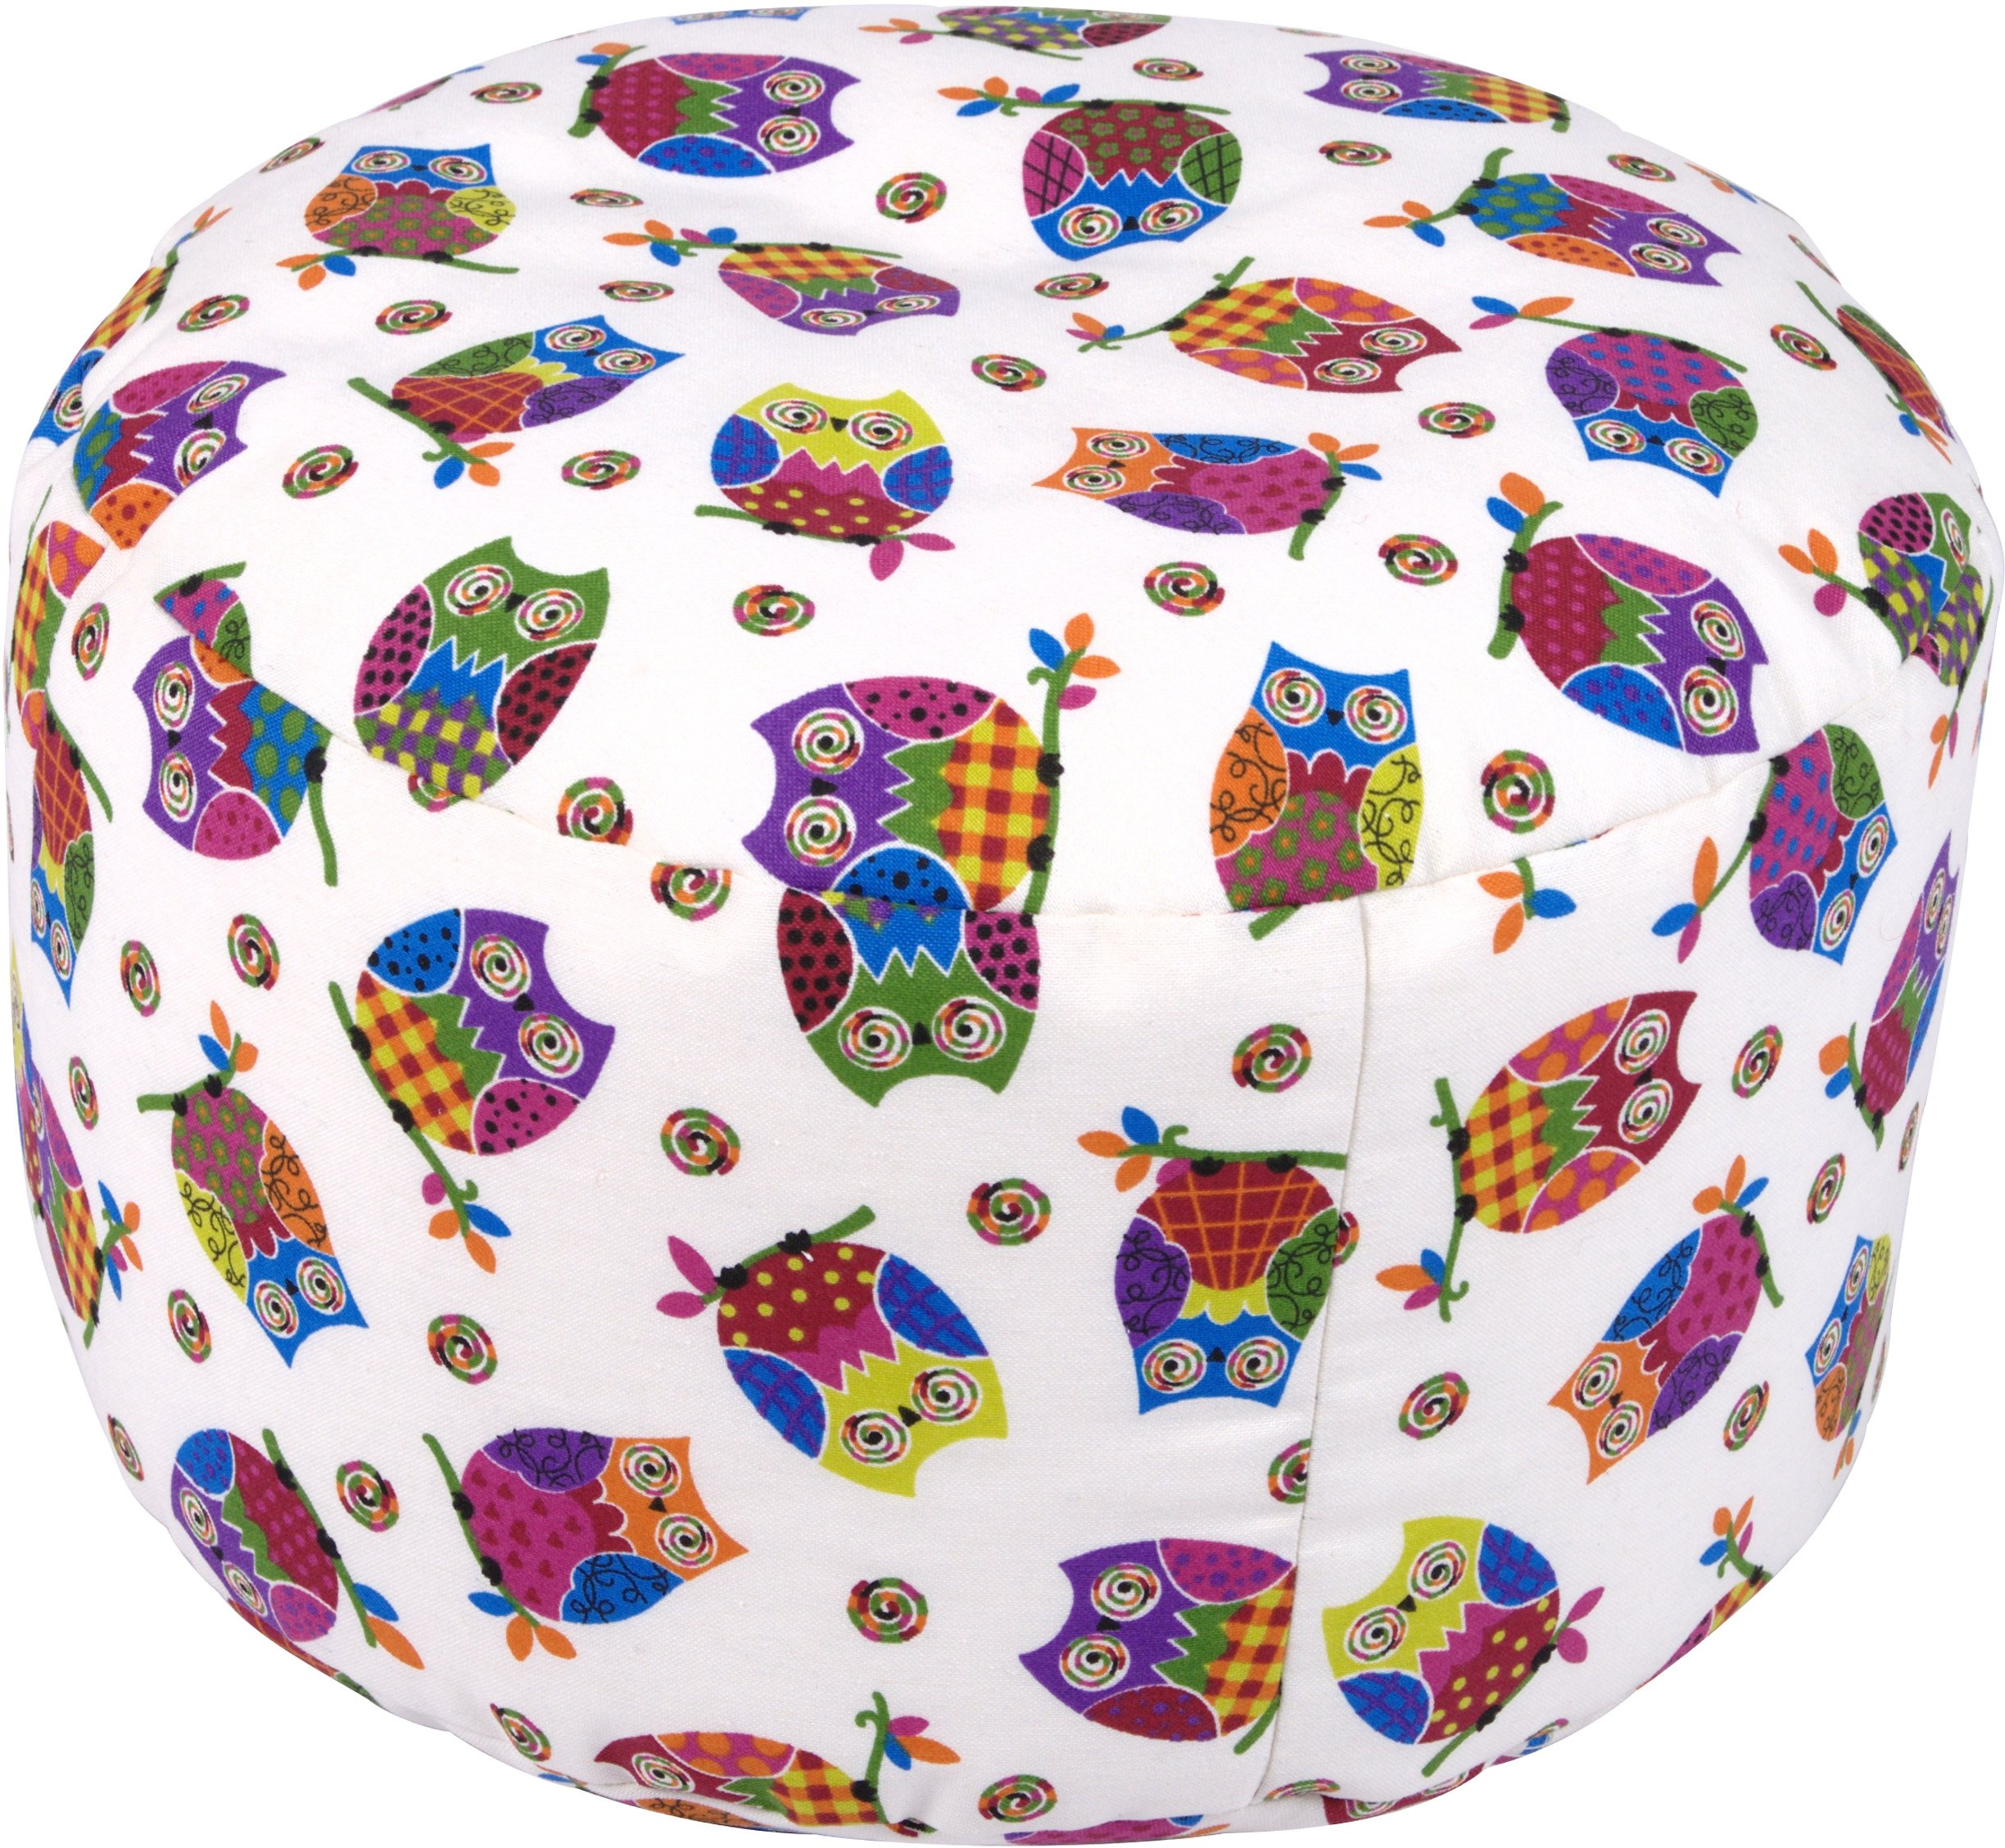 Pouf, Home affaire, »Eulen« | Wohnzimmer > Hocker & Poufs > Poufs | Polyester - Stoff | Home affaire